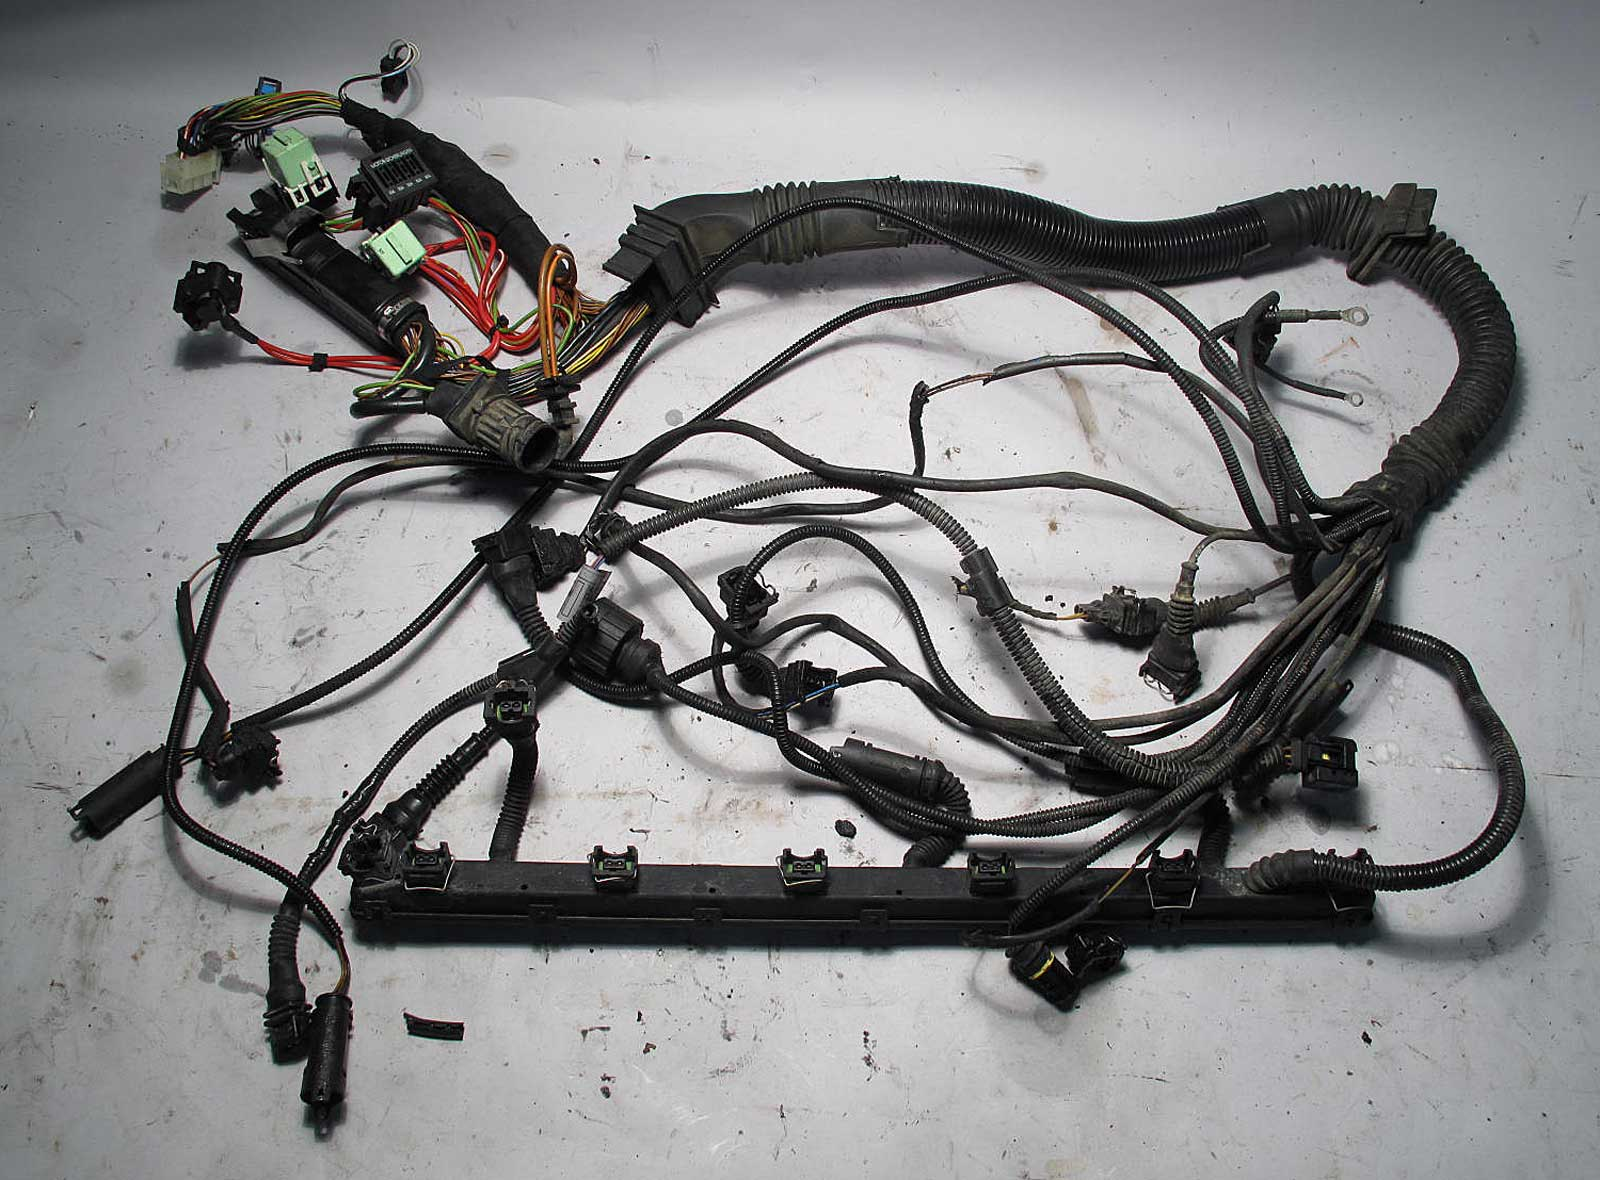 inv_004585 bmw e39 1998 528i 5 spd manual engine wiring harness complete m52 new engine wiring harness for 1985 vw vanagon at couponss.co